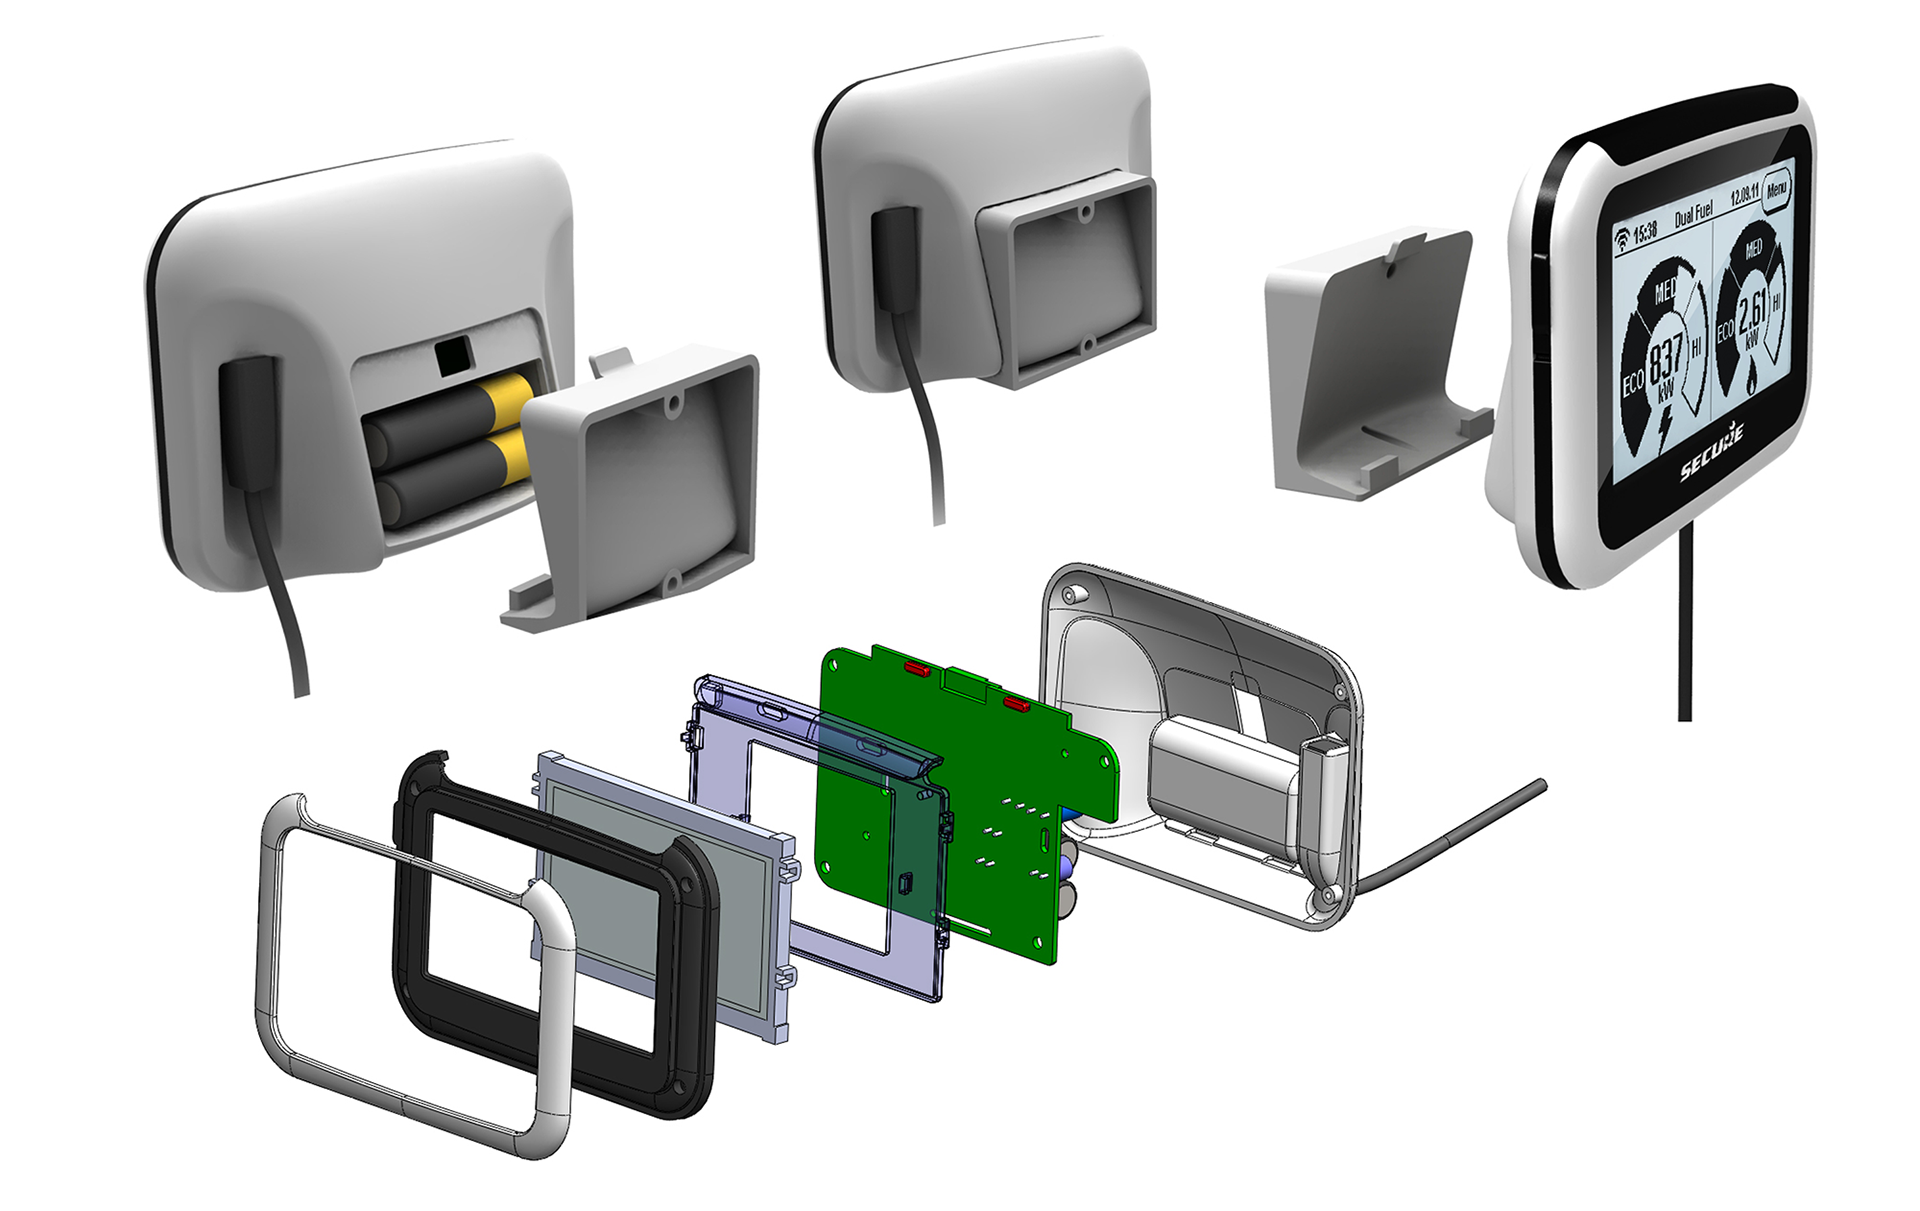 We designed the plastic casework and stand to manufacturing level, defining all parts and modelling them in Solidworks 3D CAD. We included an optional wall-mount part, considered assembly /disassembly, and cable management, adjusting designs in response to manufacturer's cost estimates